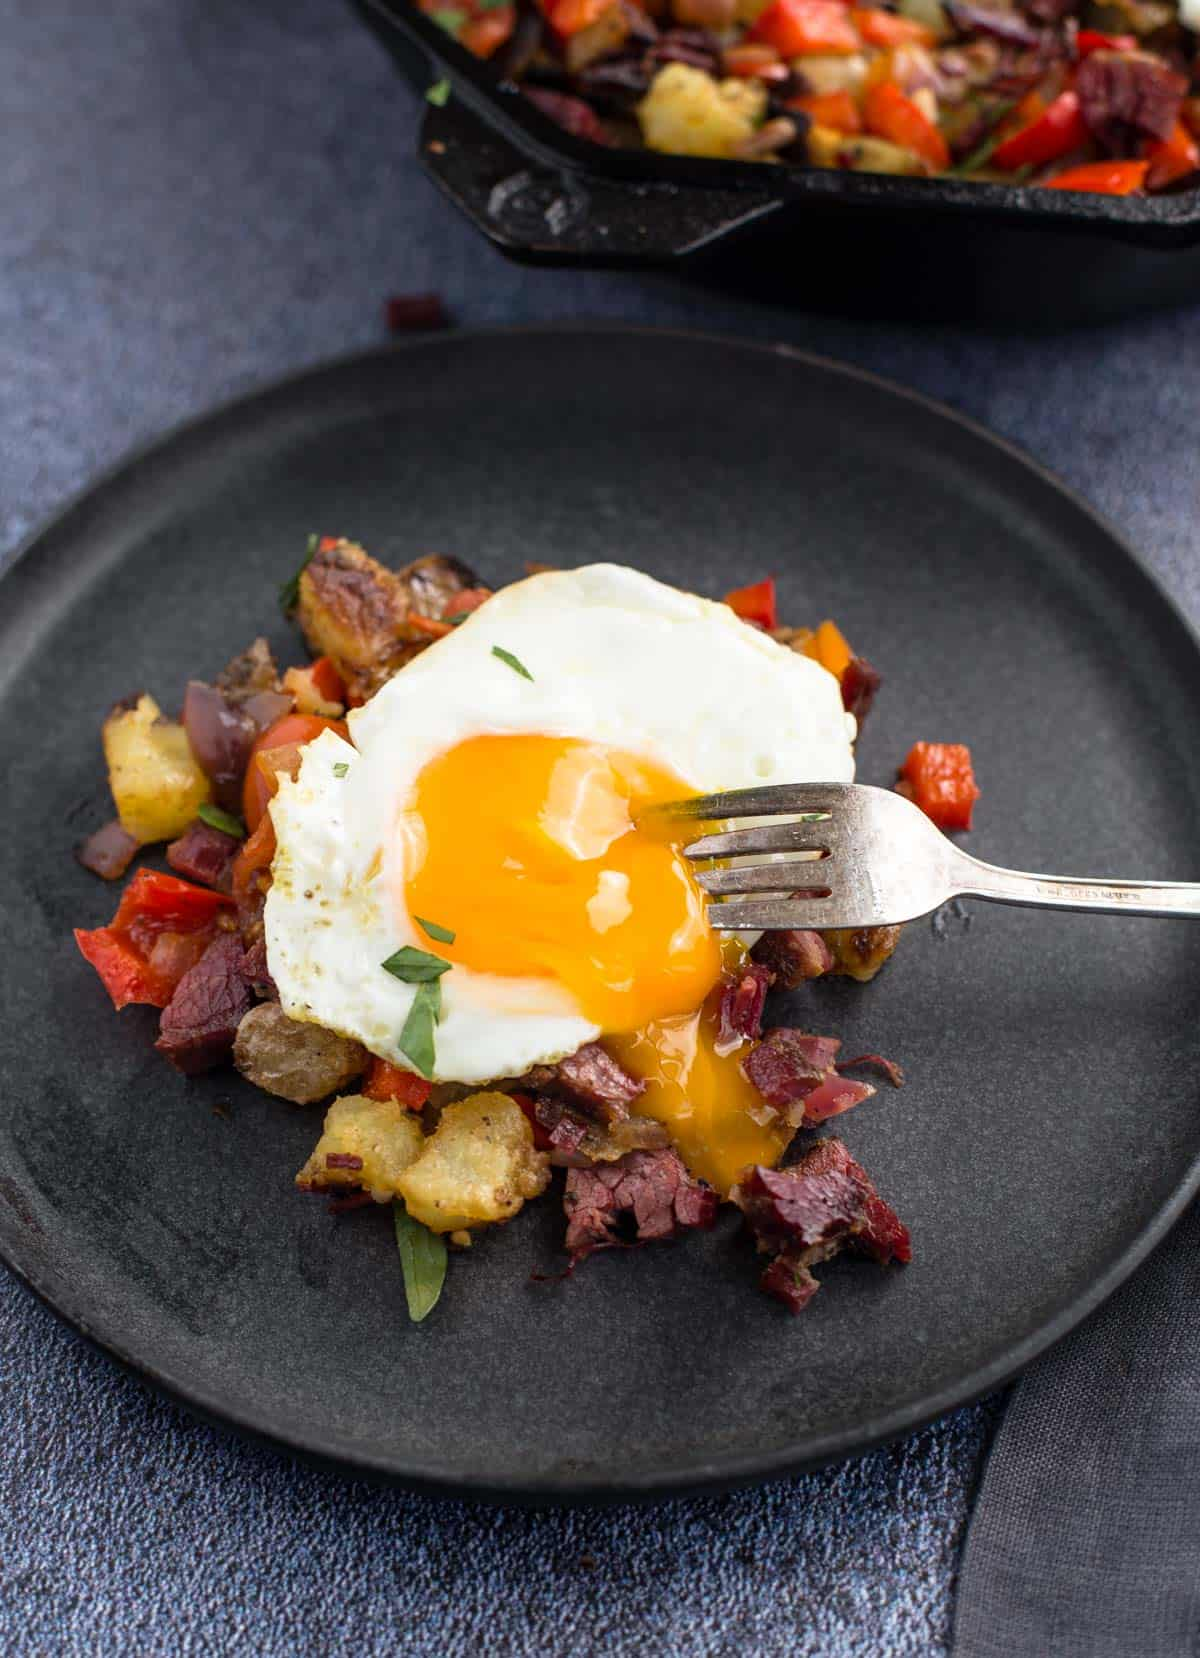 Egg sunny side up over corned beef hash on a small plate.